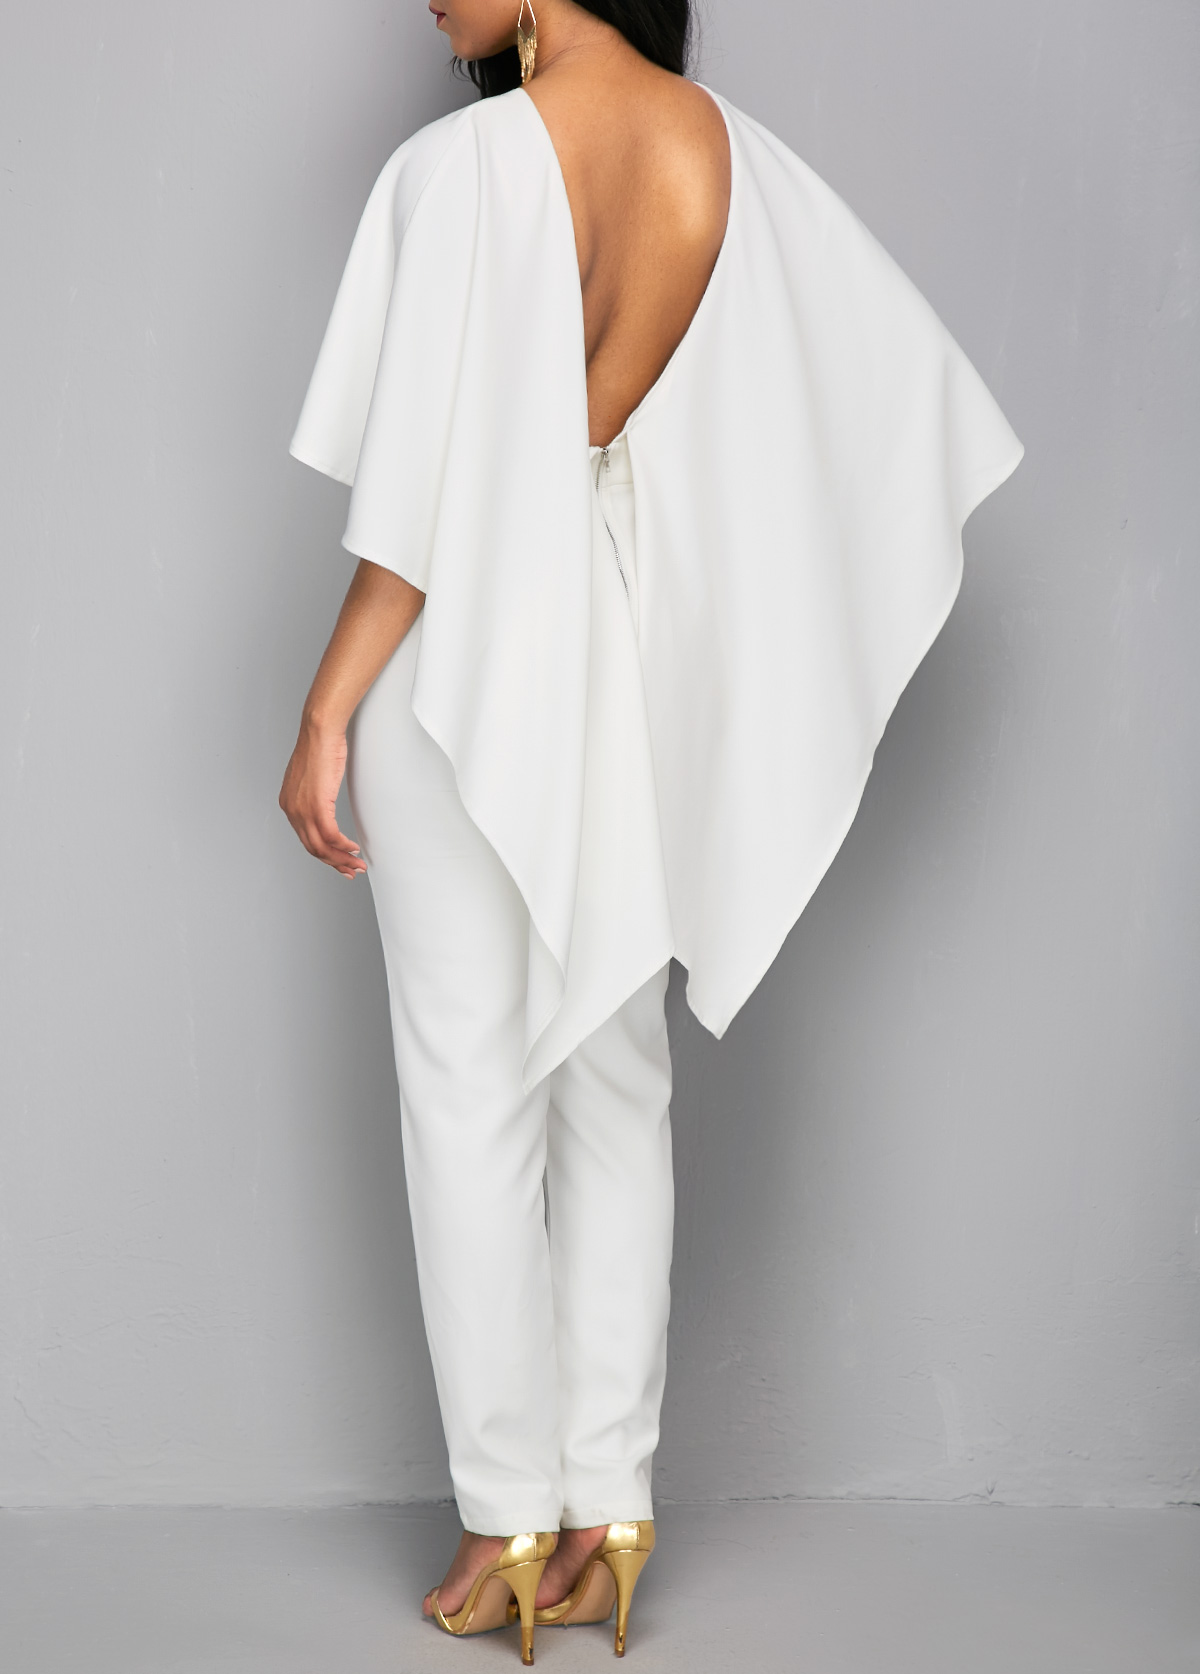 415632df34 Zipper Closure V Back White Cloak Jumpsuit. AddThis Sharing Buttons